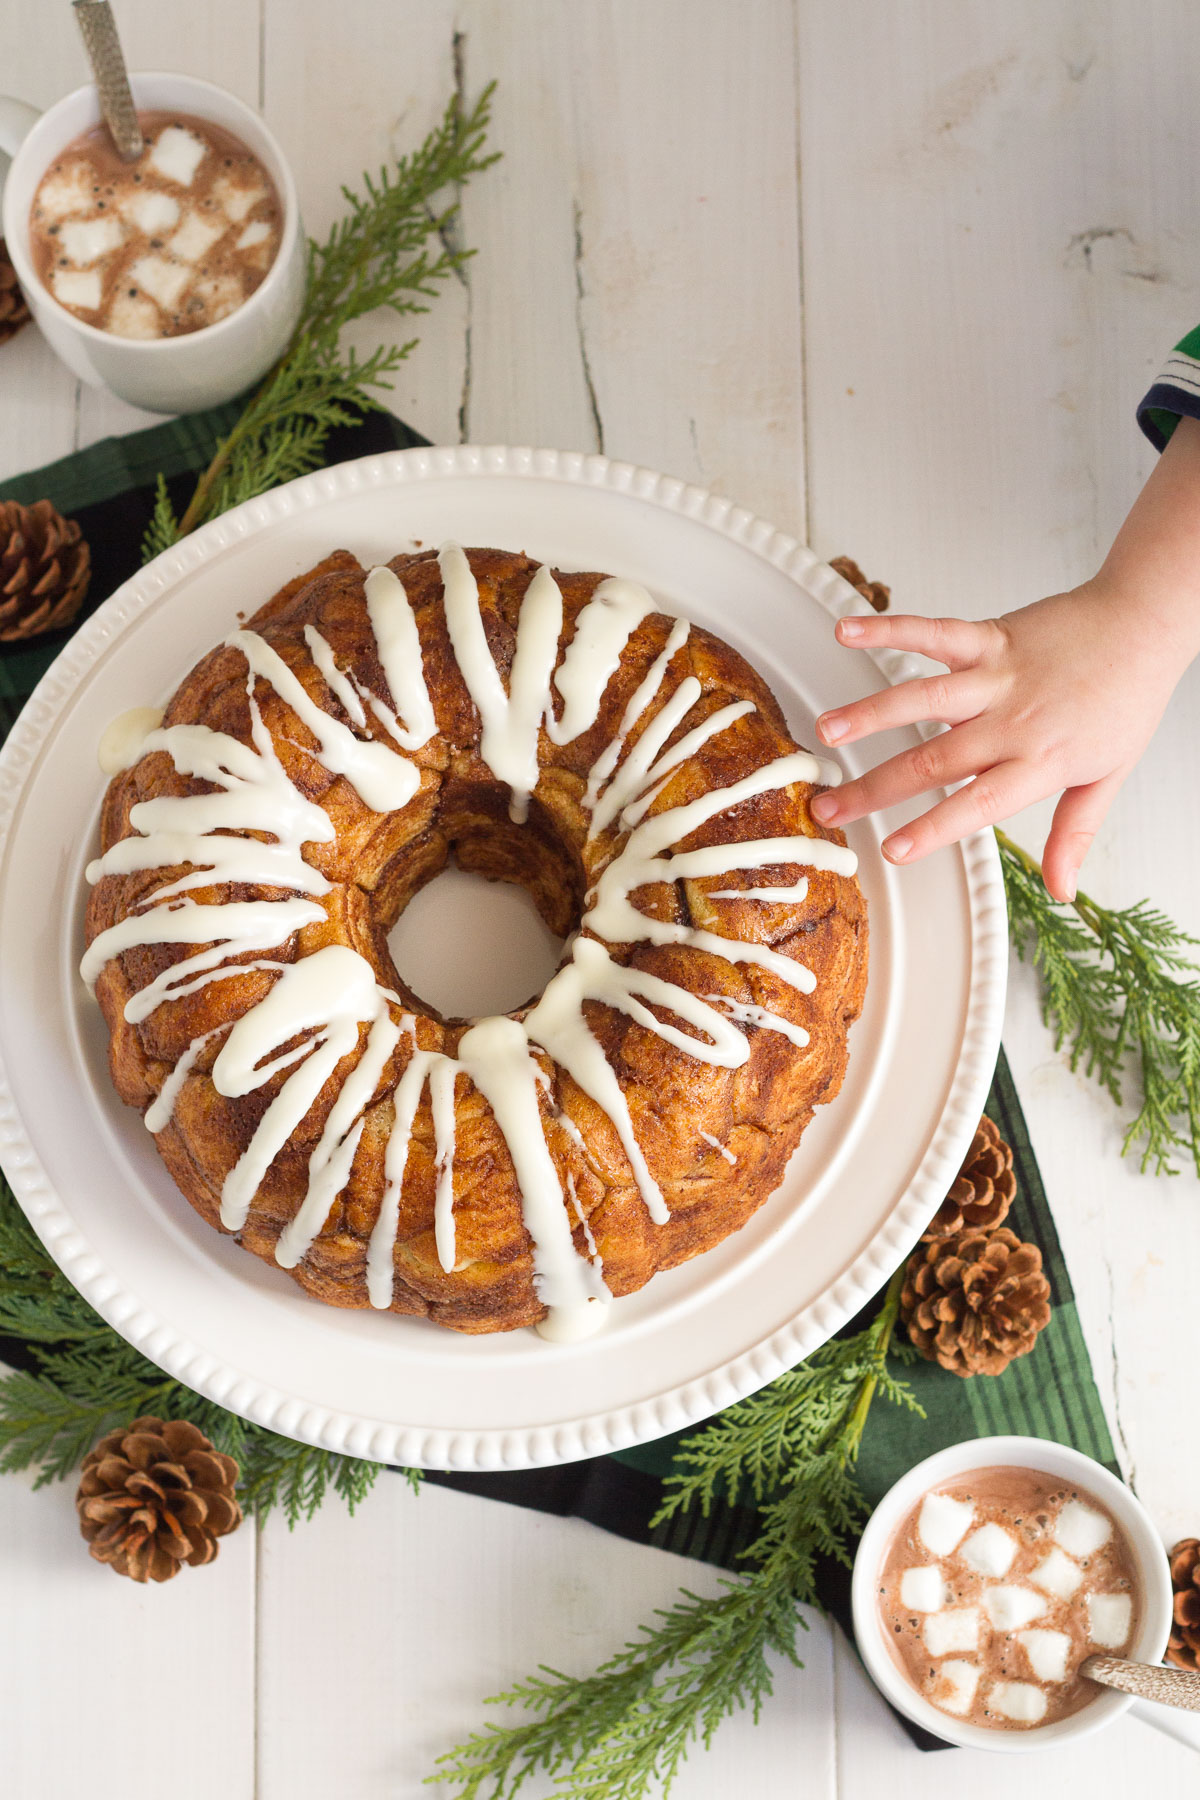 Warm, buttery, and covered in sweet cinnamon and sugar, this delicious homemade monkey bread is the perfect treat for chilly weather.